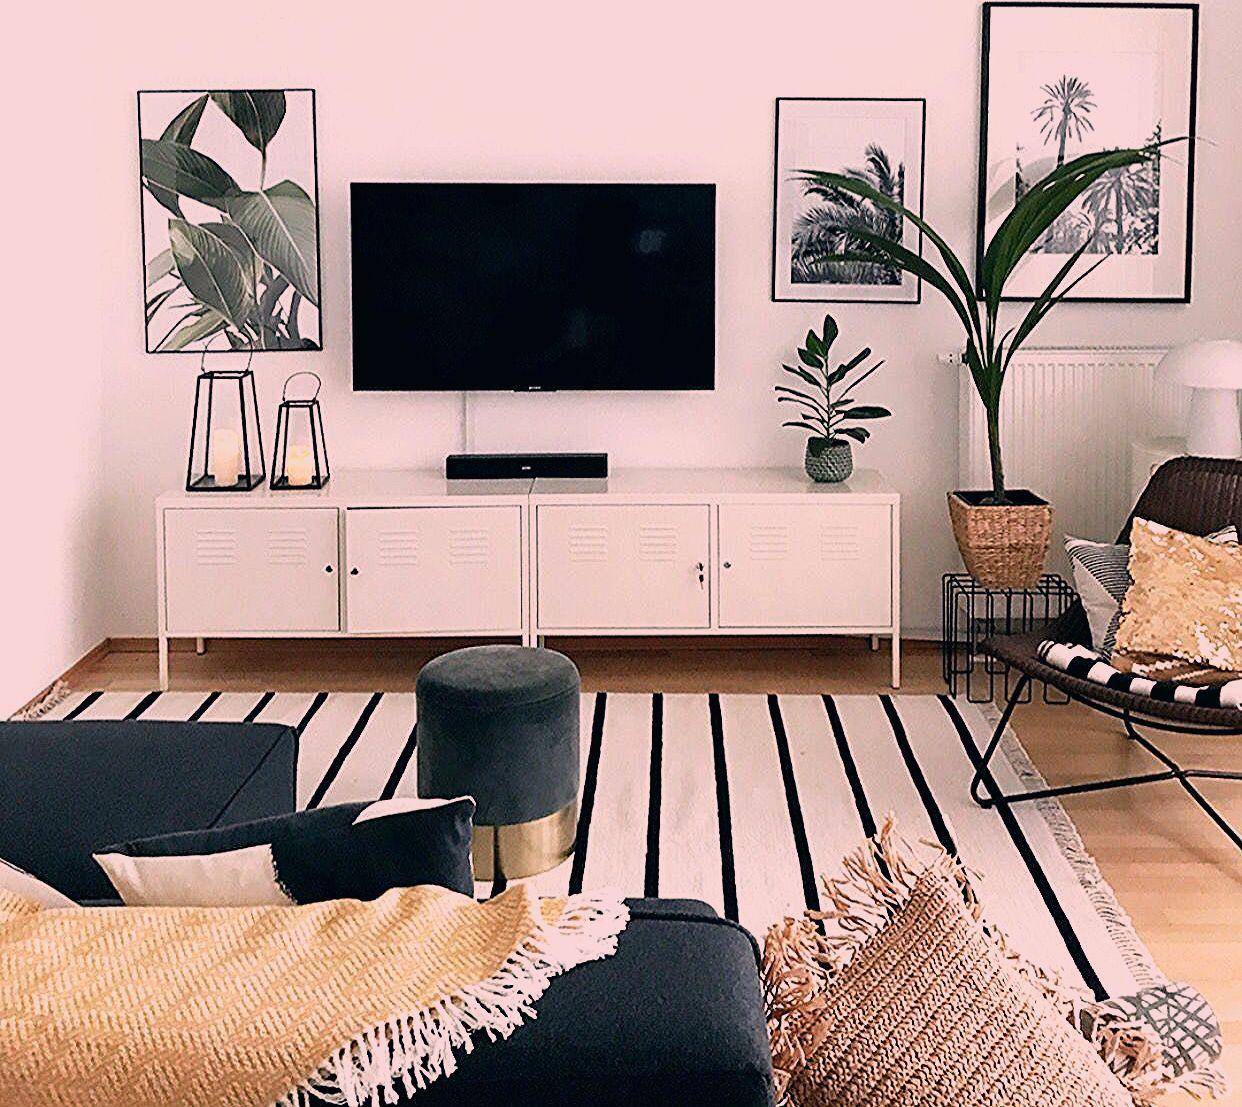 sophiagaleria - Wohn & Deko Blog #allwhiteroom Living Room with Plants #sophiagaleria #interior #urbanjungle